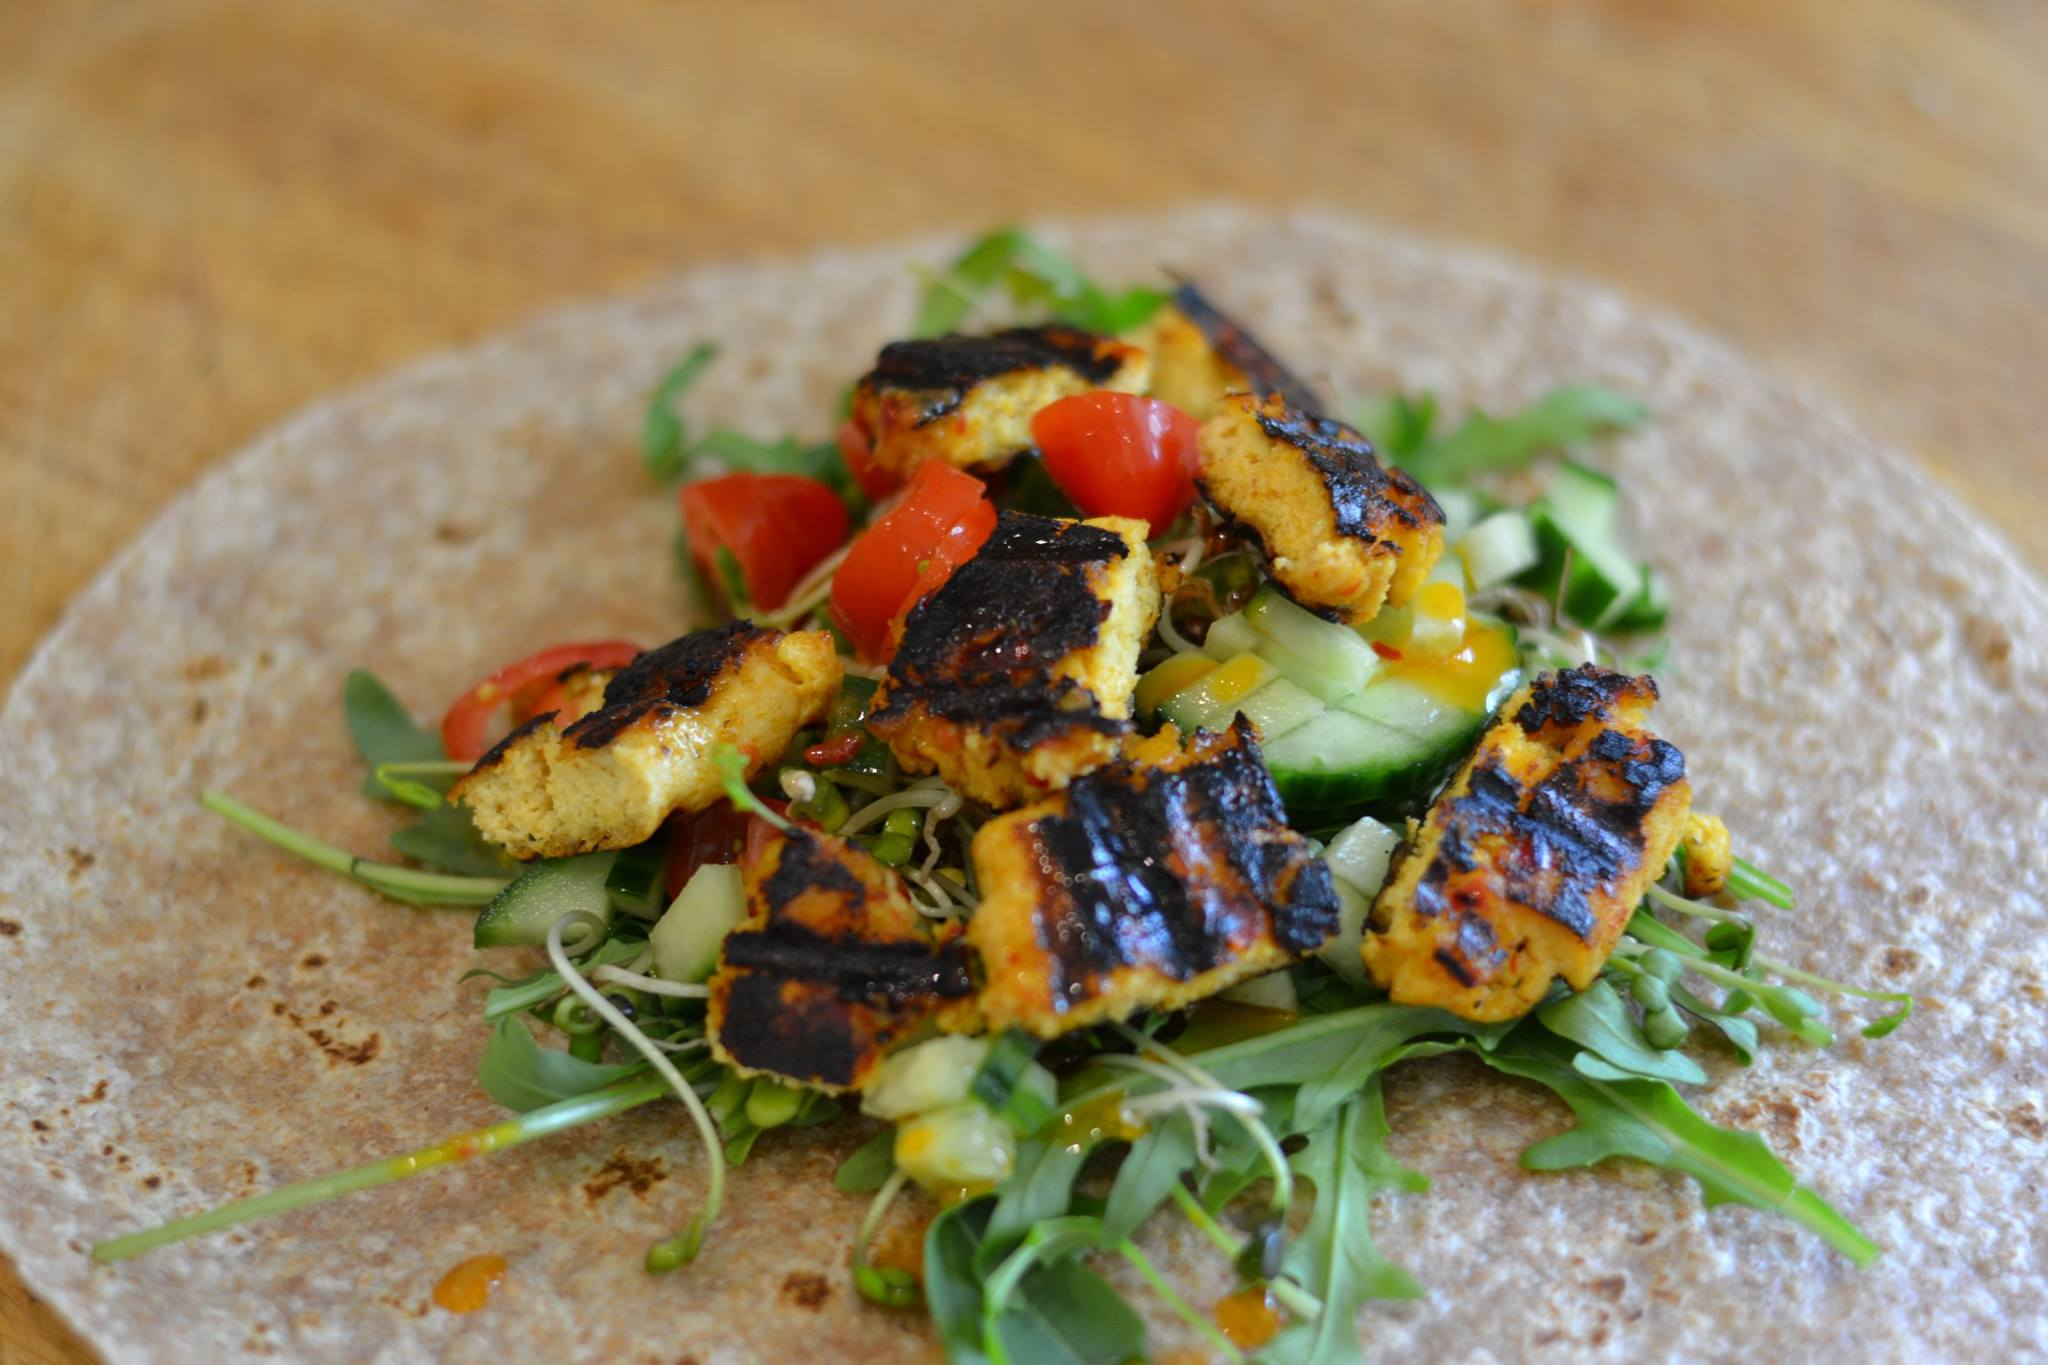 Marinated tofu wrap